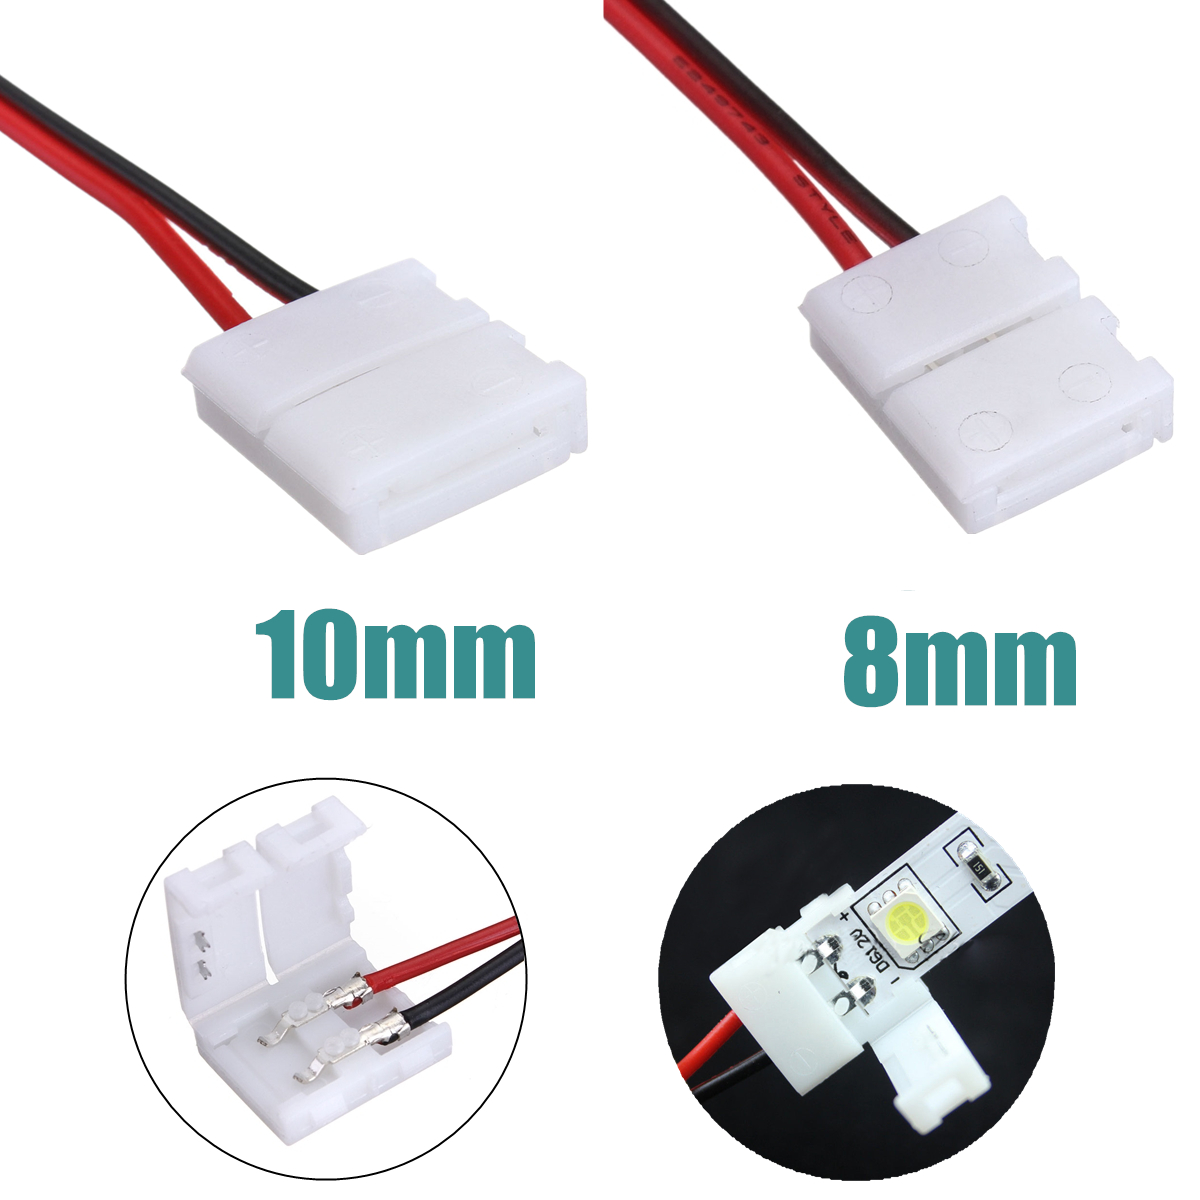 2-Pins Power Connector Adaptor For 3528/5050 Led Strip Wire With PCB 5 30pcs lot 40inch 1m long led channel embedded aluminum profile for double row led strip milky transparent cover for 20mm pcb